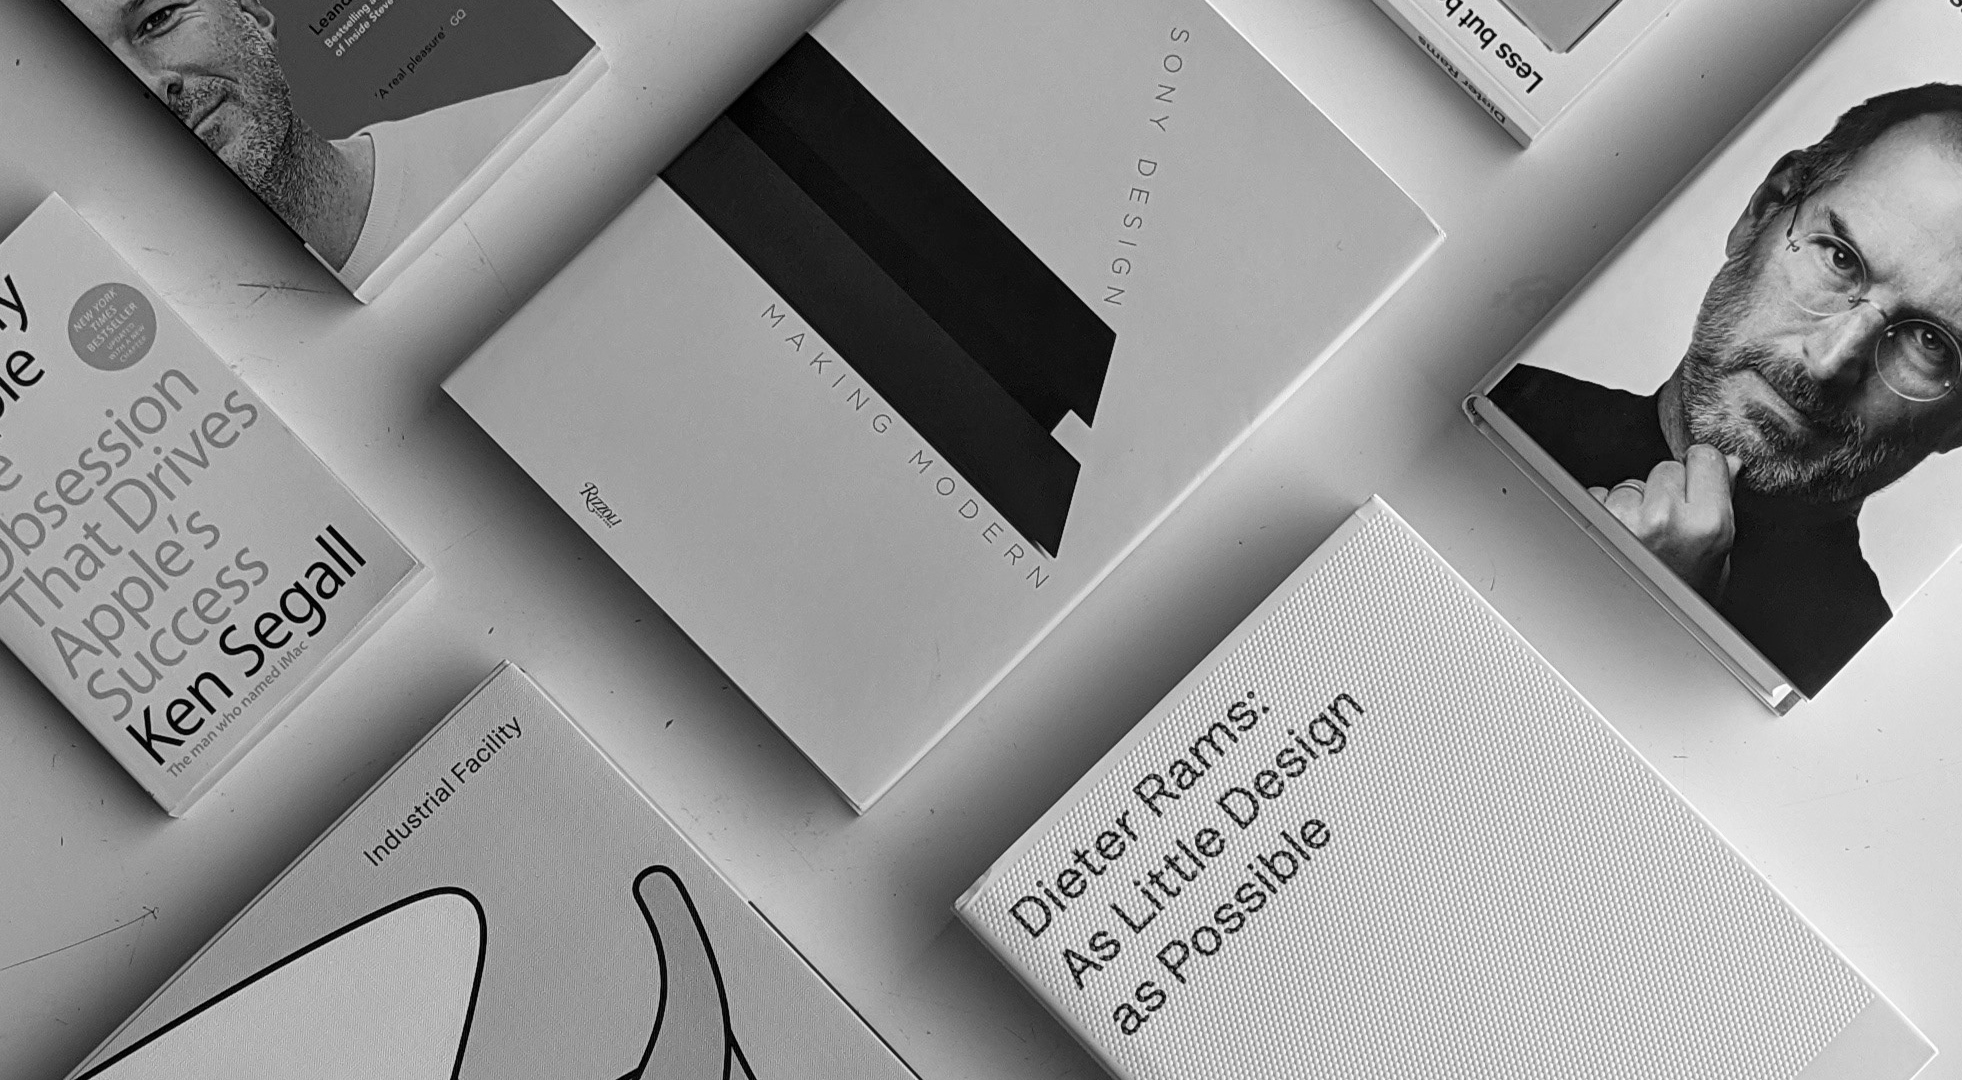 Product Design Companies (and interesting design books about them)